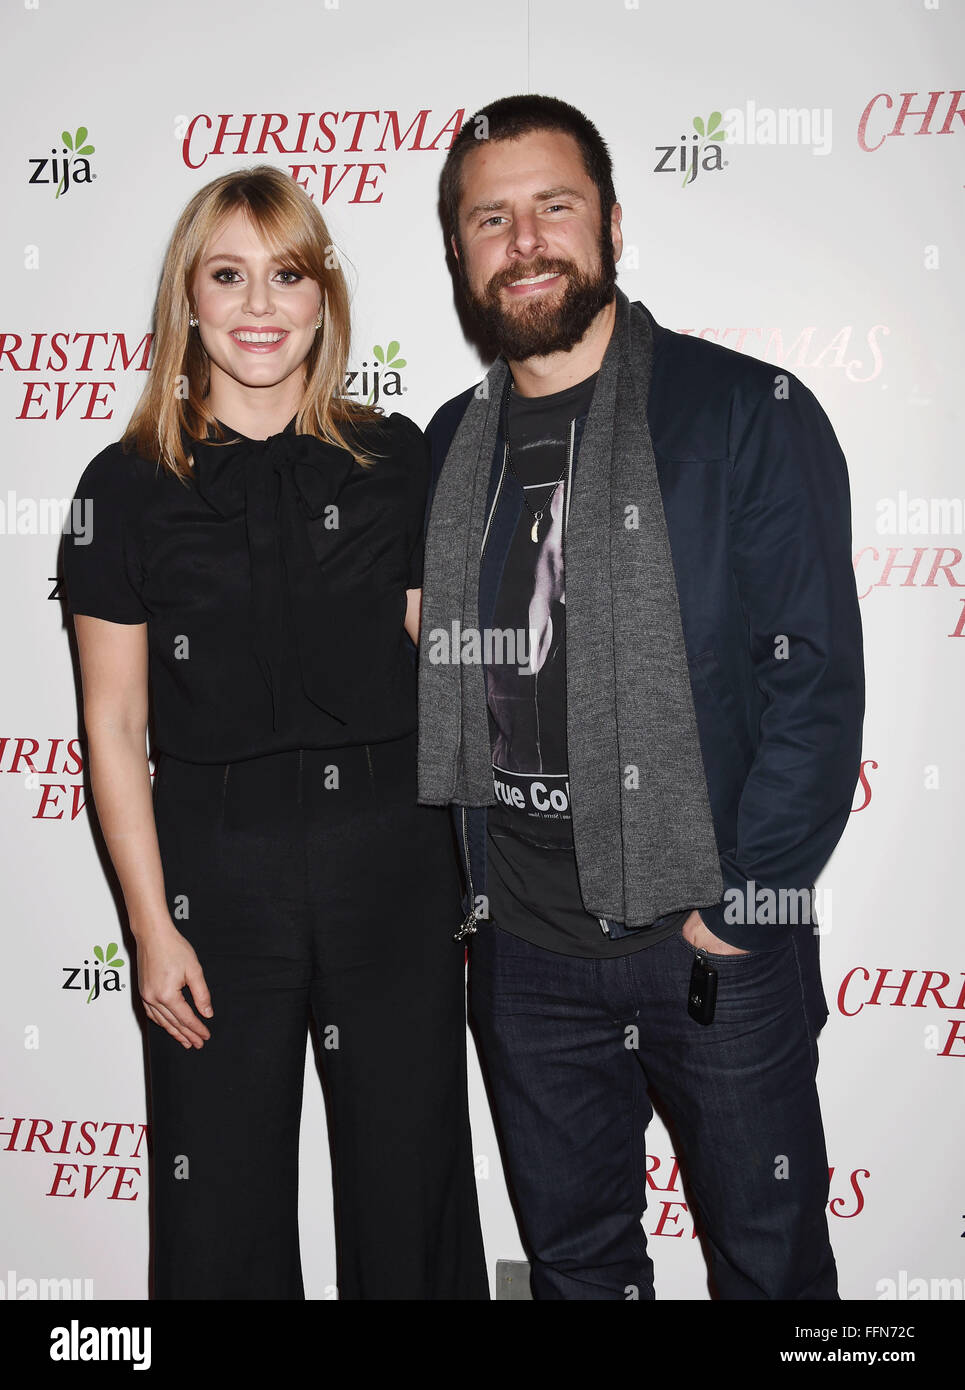 Actors Julianna Guill (L) and James Roday arrive at the premiere of Unstuck's 'Christmas Eve' at the - Stock Image